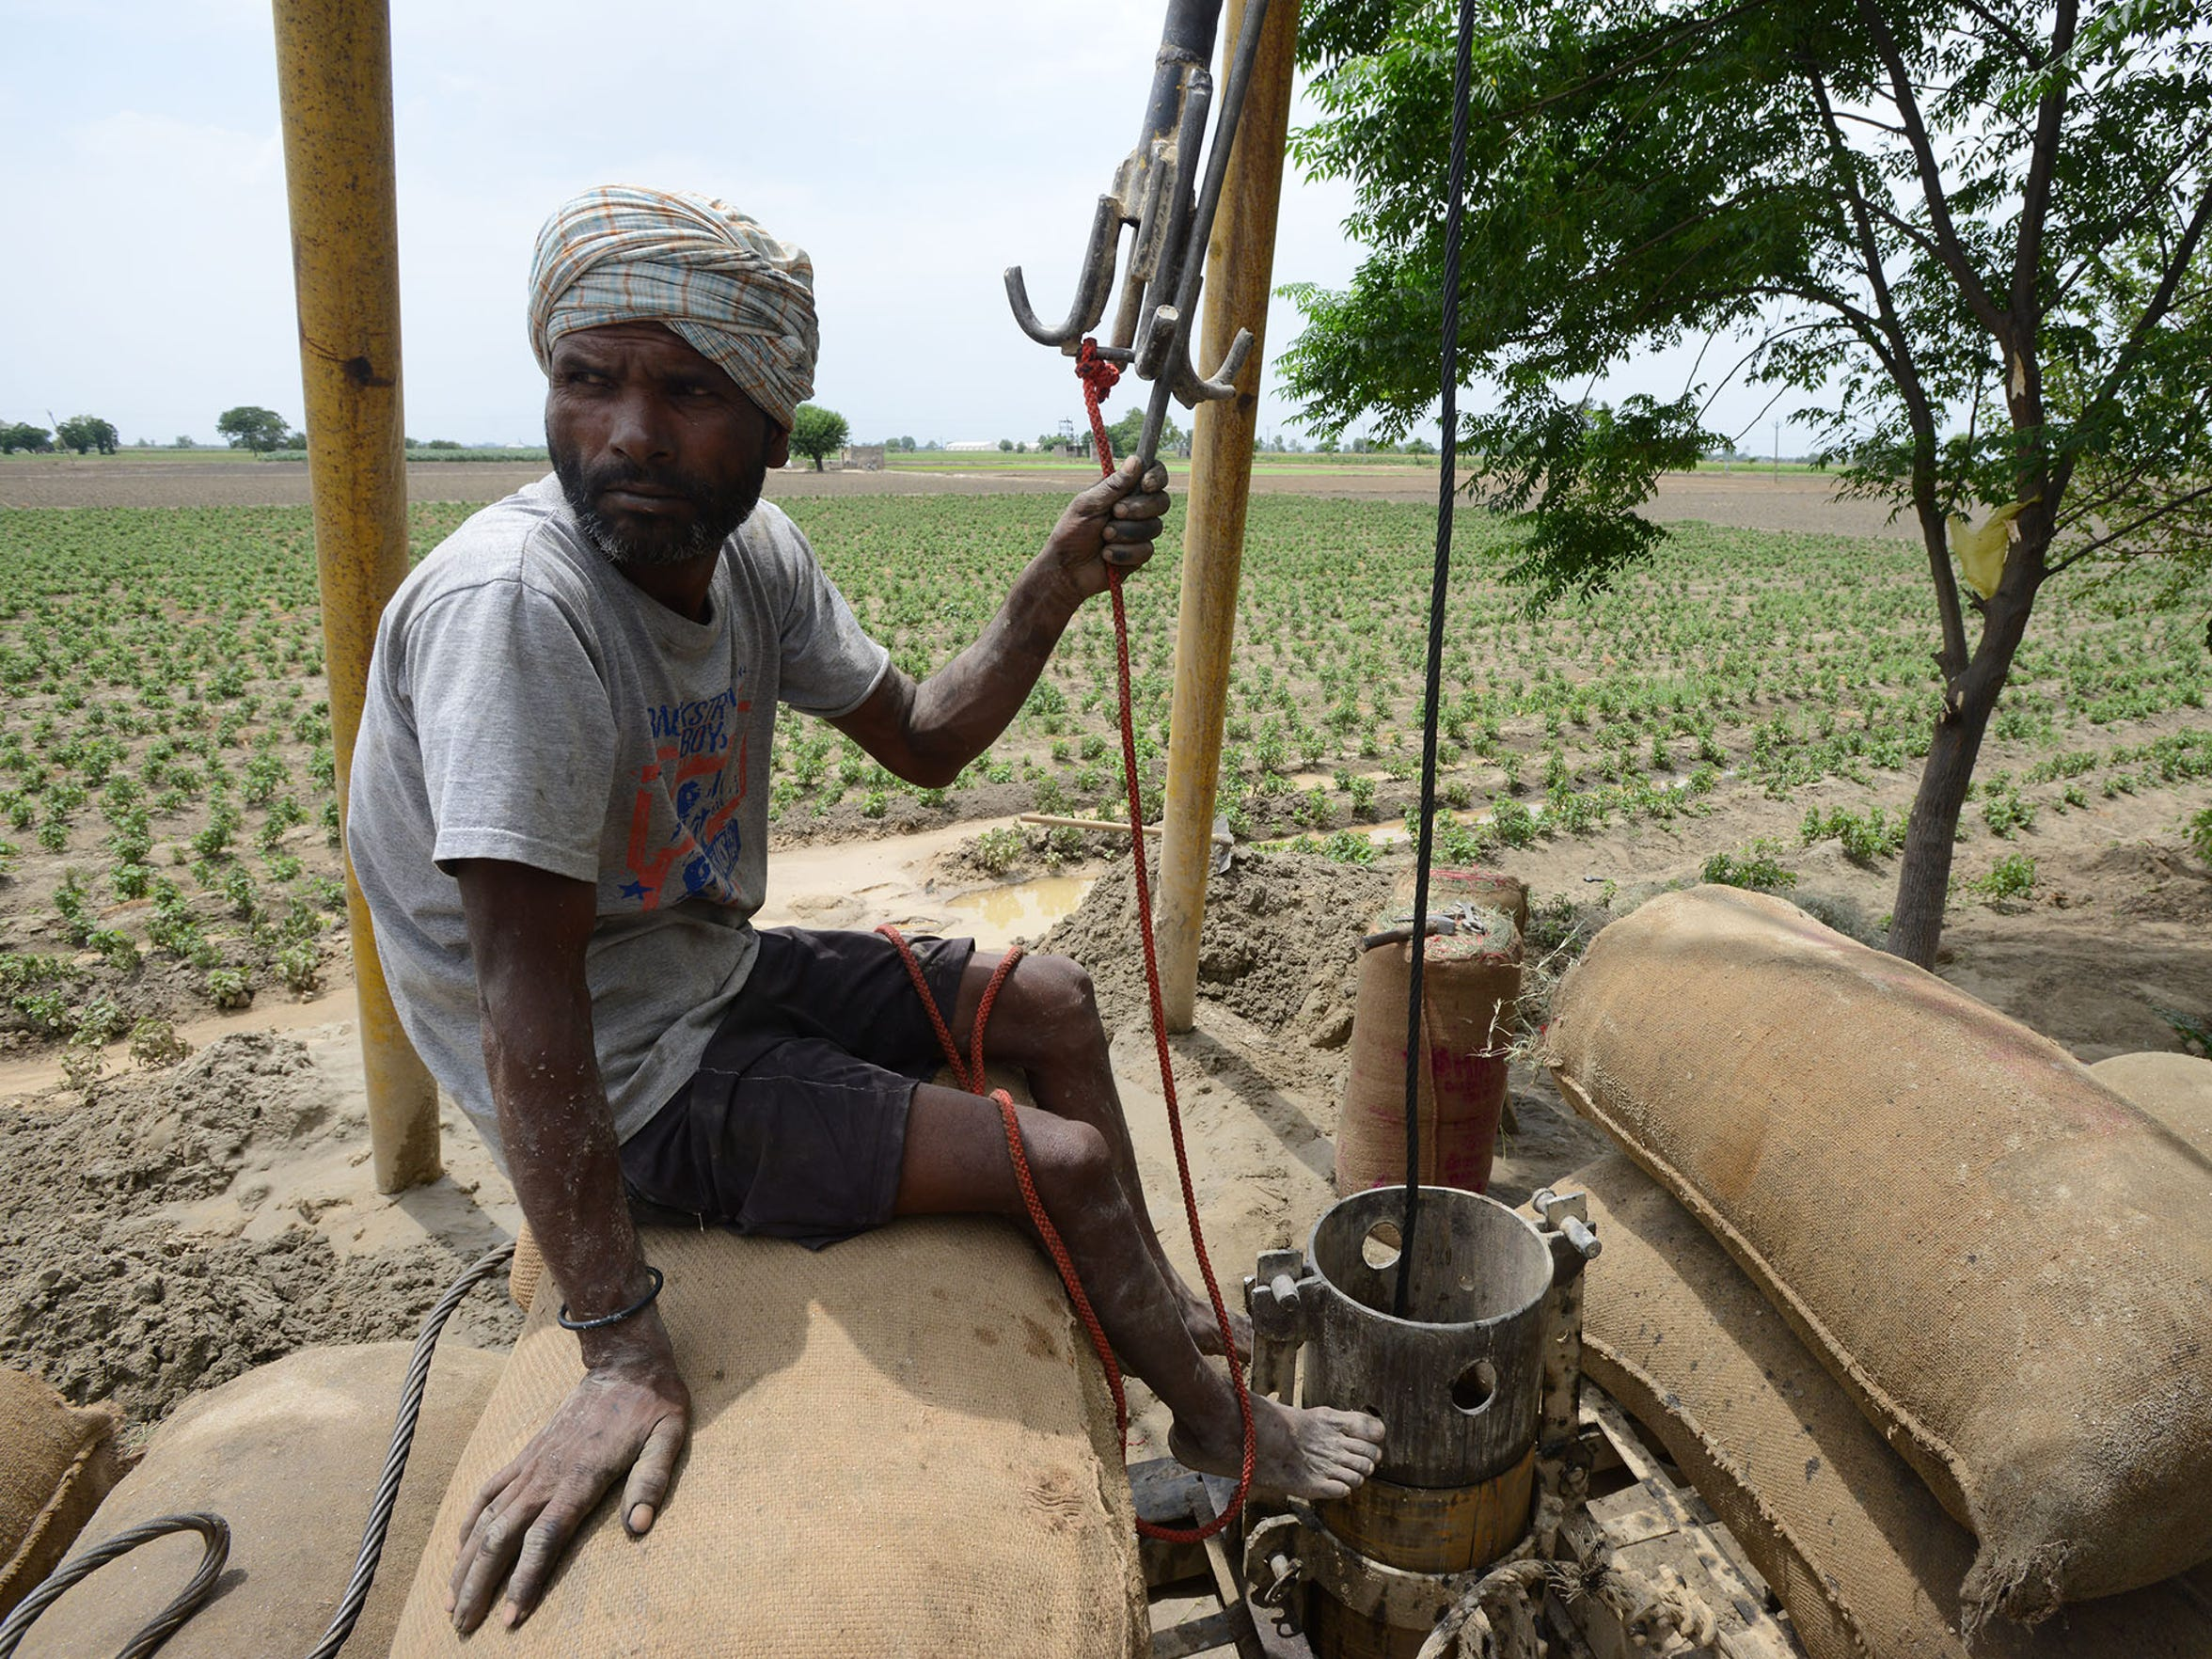 Santar Pal pauses from while digging a new tube well in the northern Indian state of Punjab. Groundwater levels have been falling as water is heavily pumped for farms. Many new wells are being drilled across the countryside.